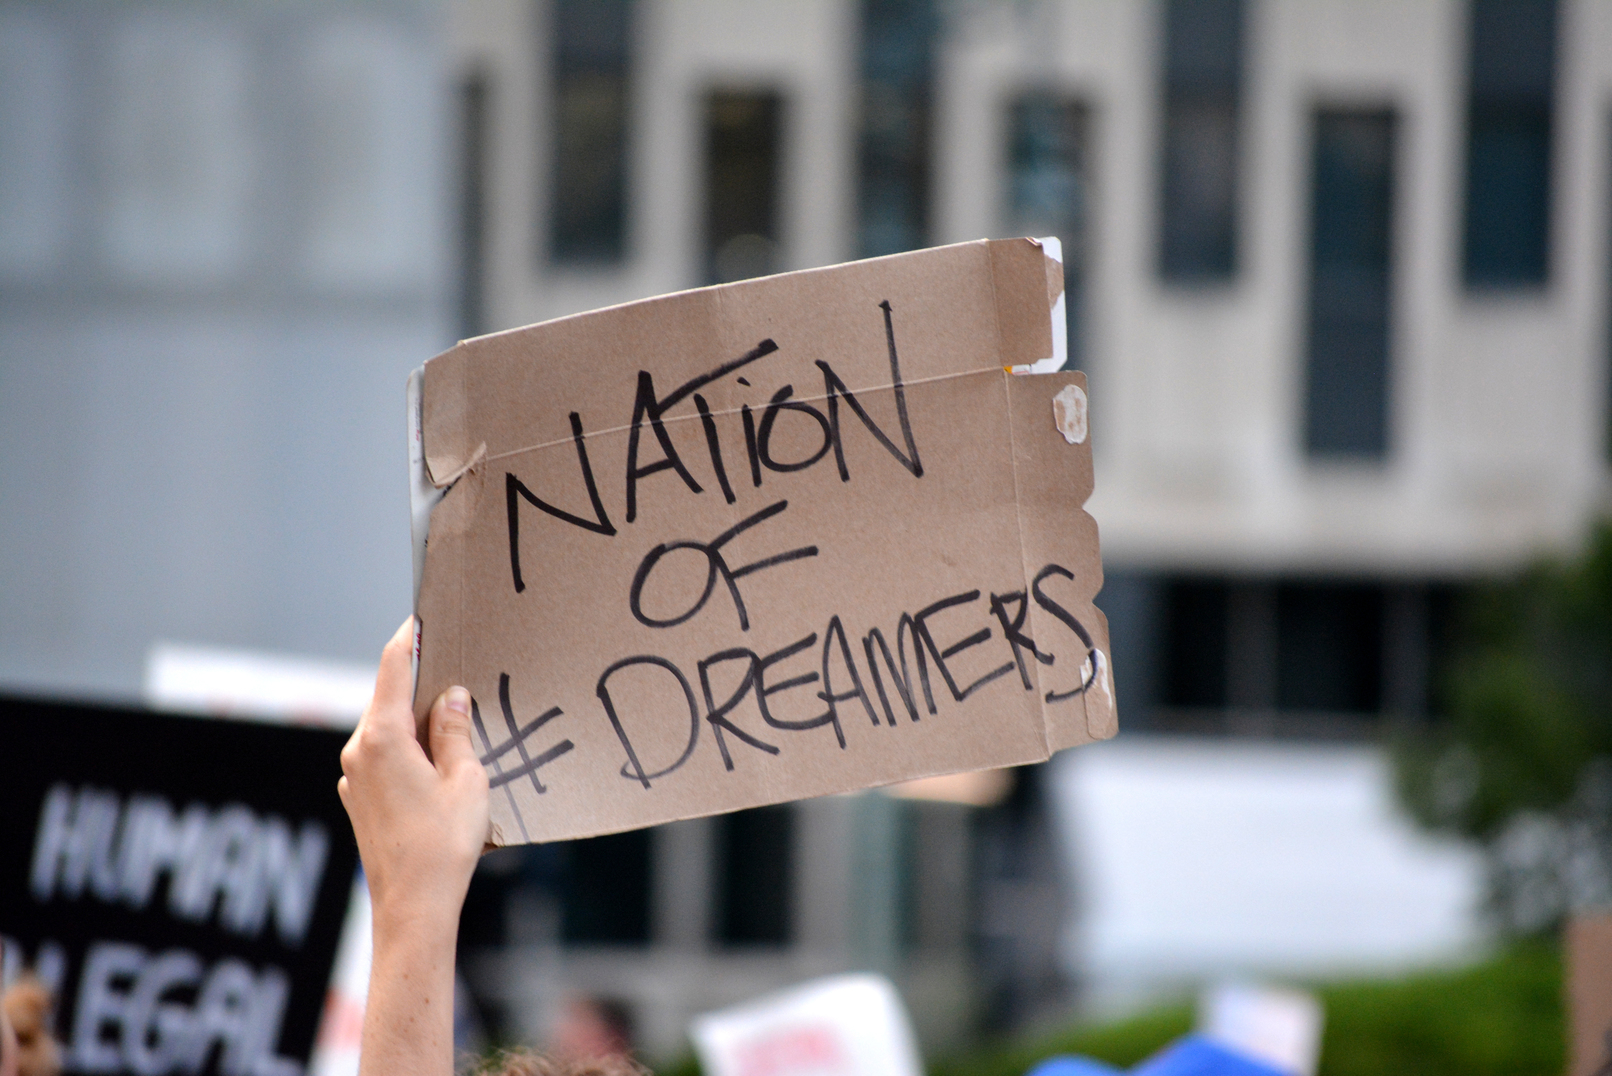 9th Circuit Rules Against Trump on DACA, Supreme Court Review Likely